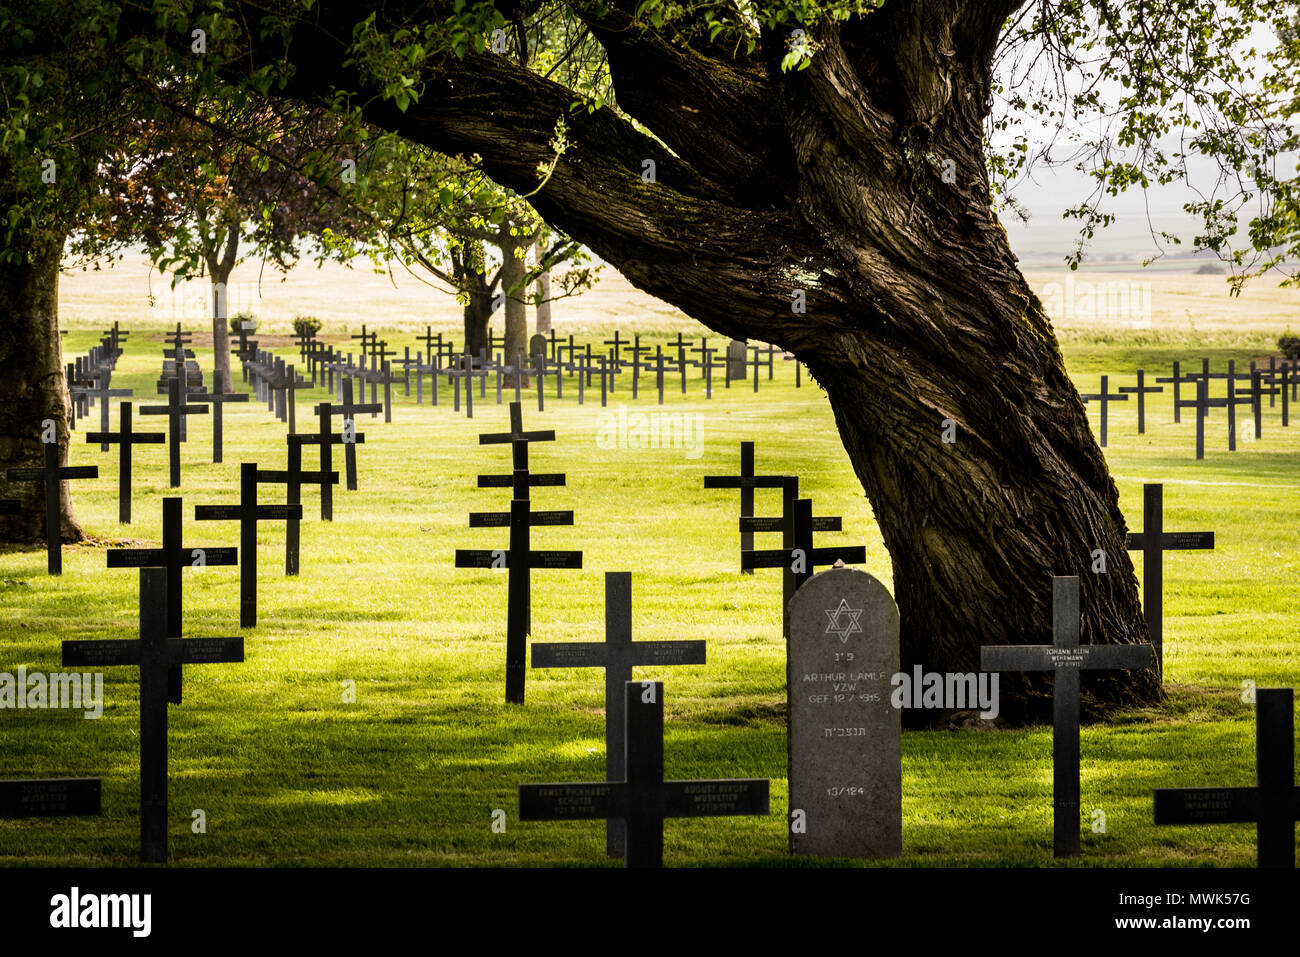 German First World War cemetery Neuville St Vaast, near Arras, France Stock Photo